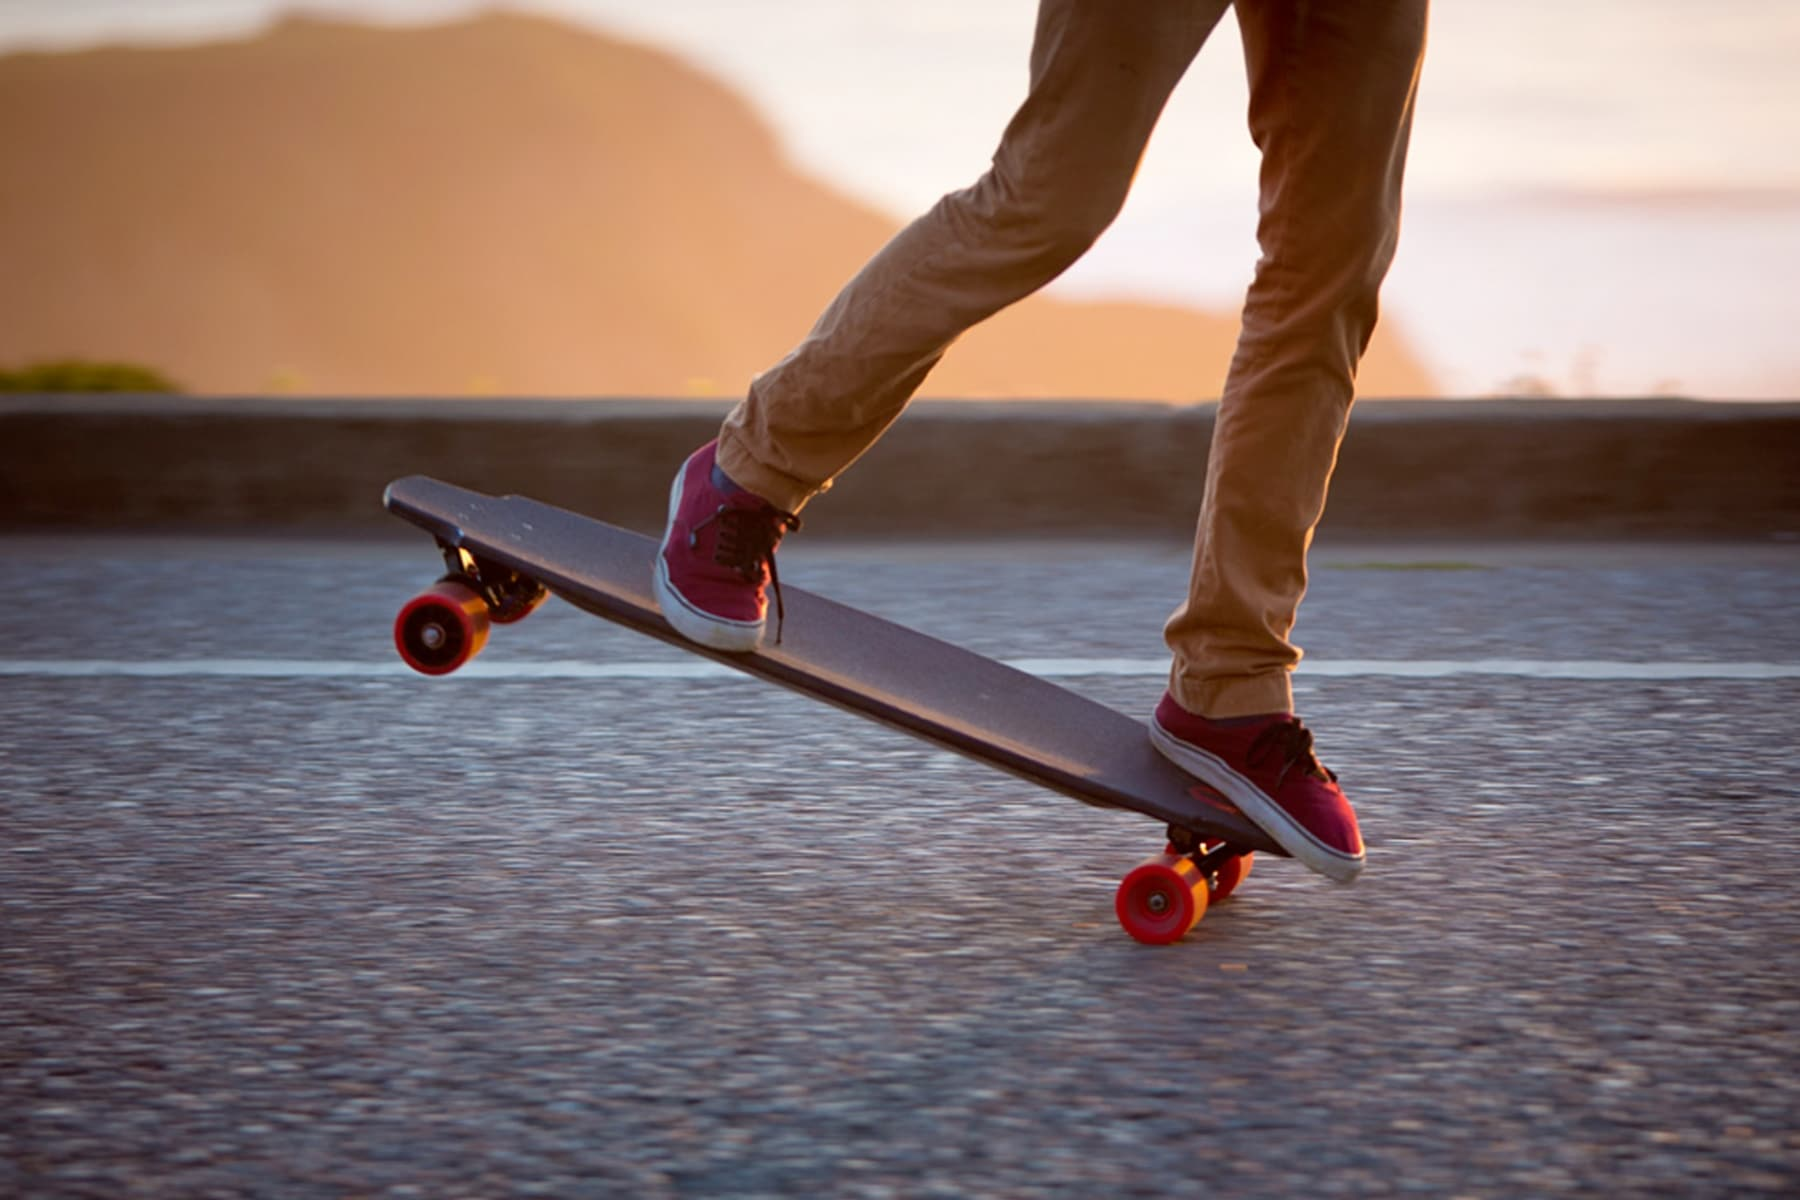 10 Most Popular Electric Skateboards for Teens [Buying Guide] 8